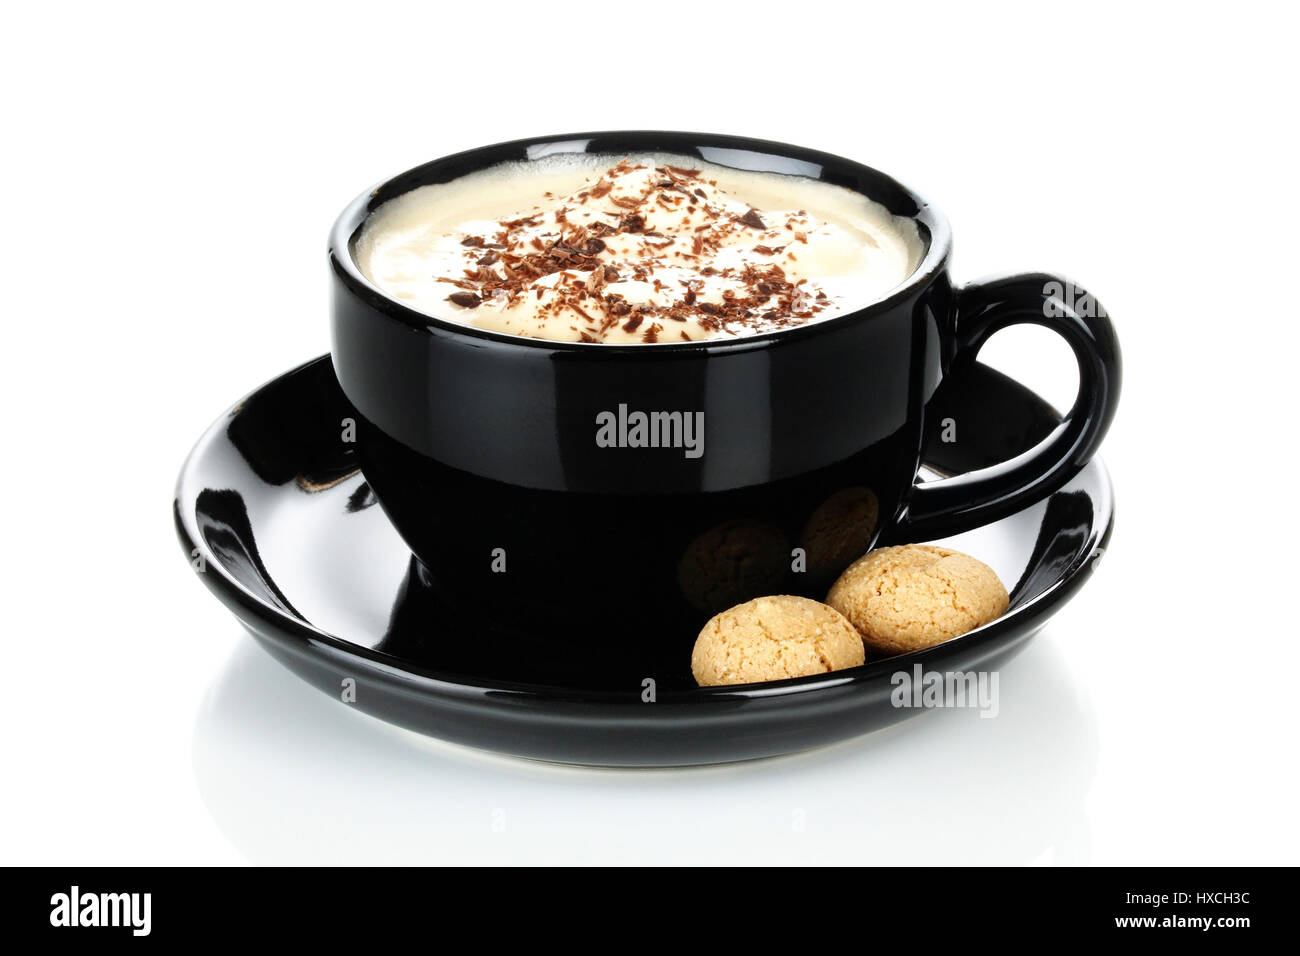 Cup of coffee - cup with Coffee - Cappucino, Tasse Kaffee - Cup with ...